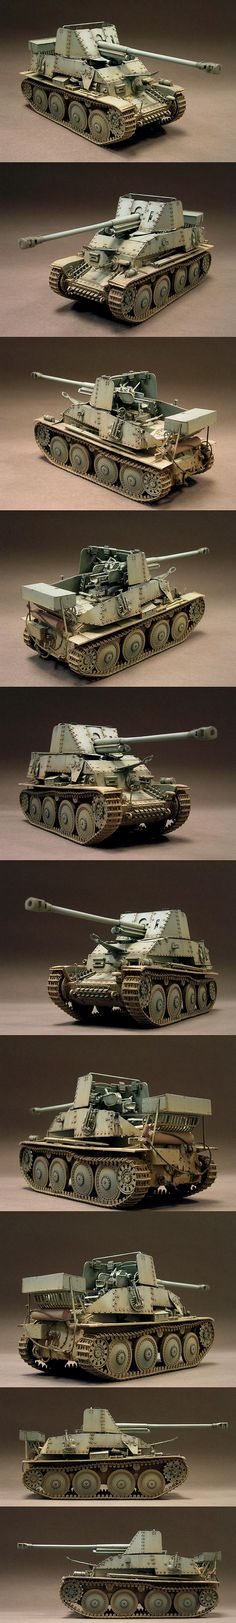 Marder III 1/35 Scale Model